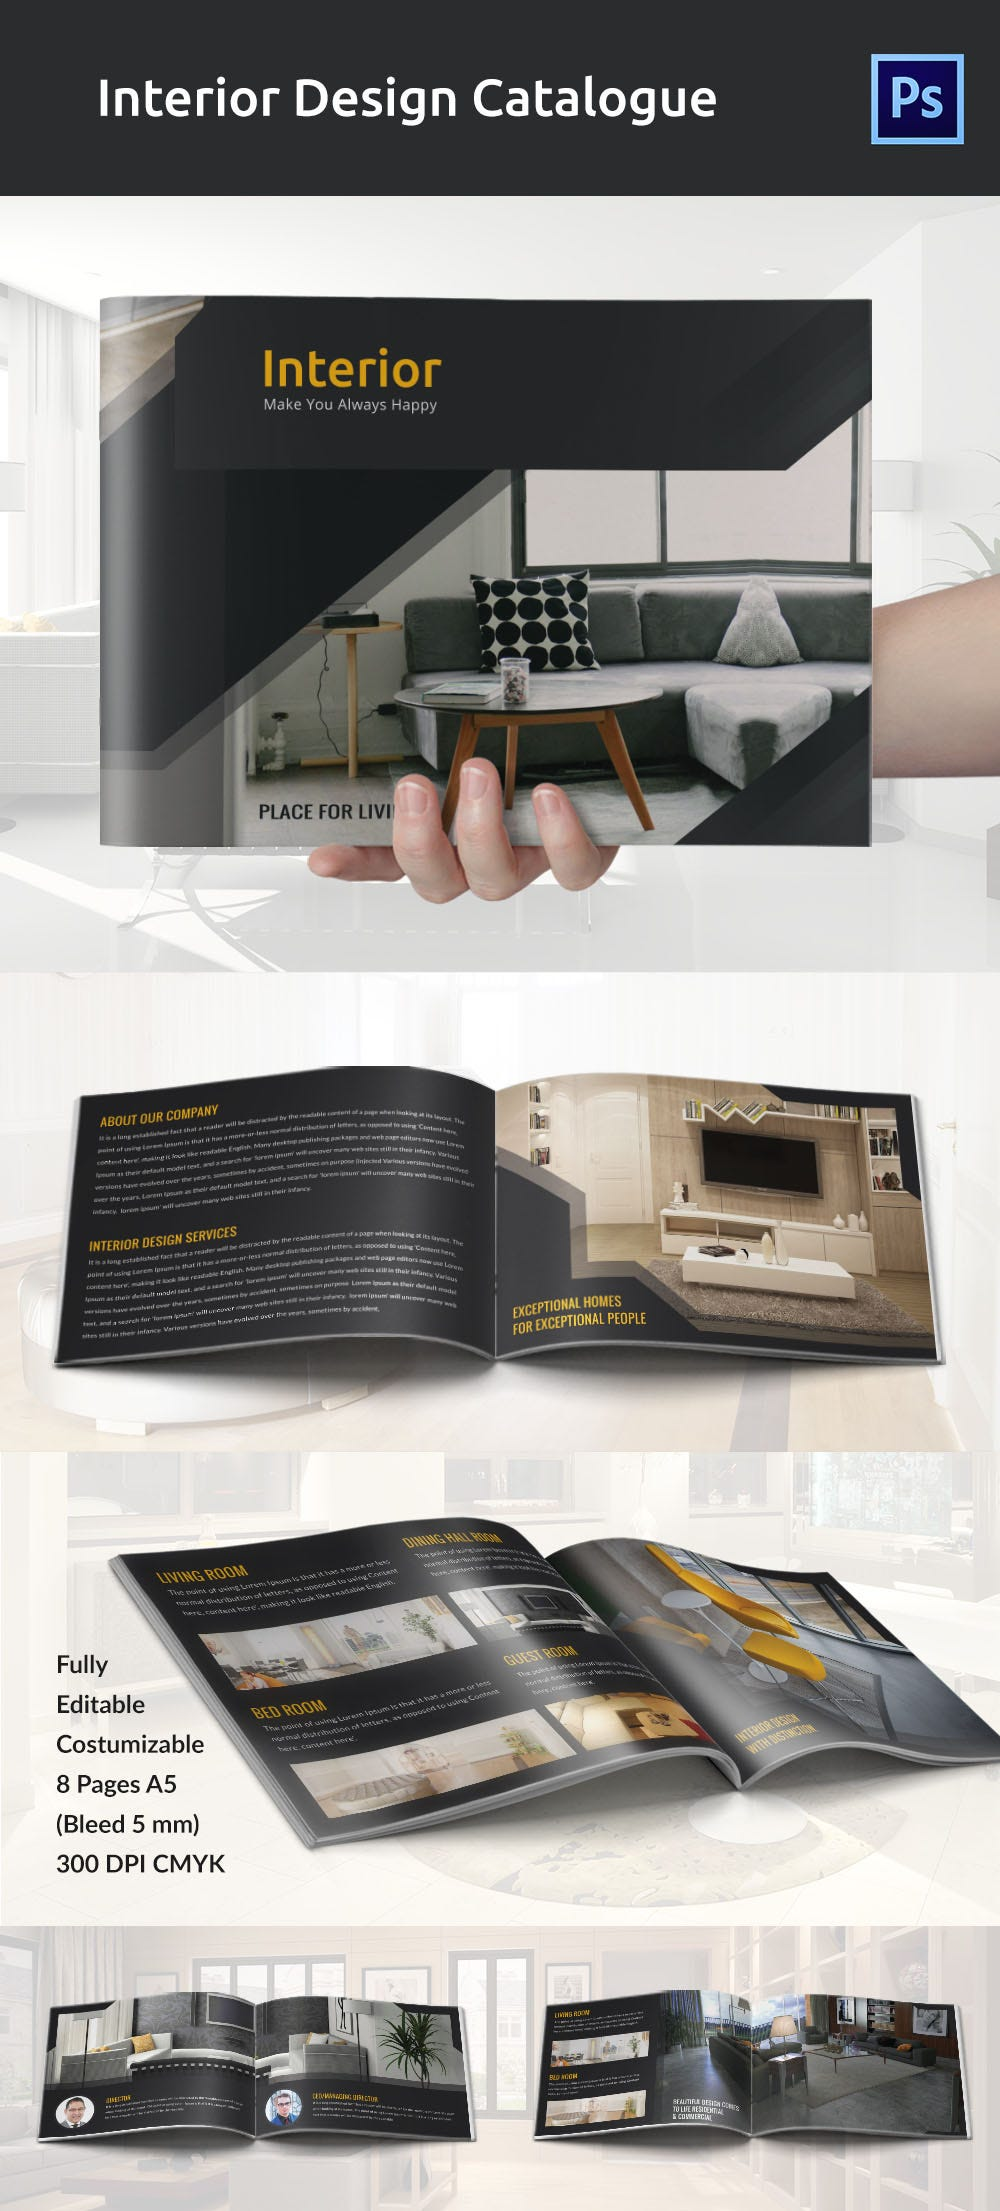 Creative Interior Design Brochure In Catalog Style